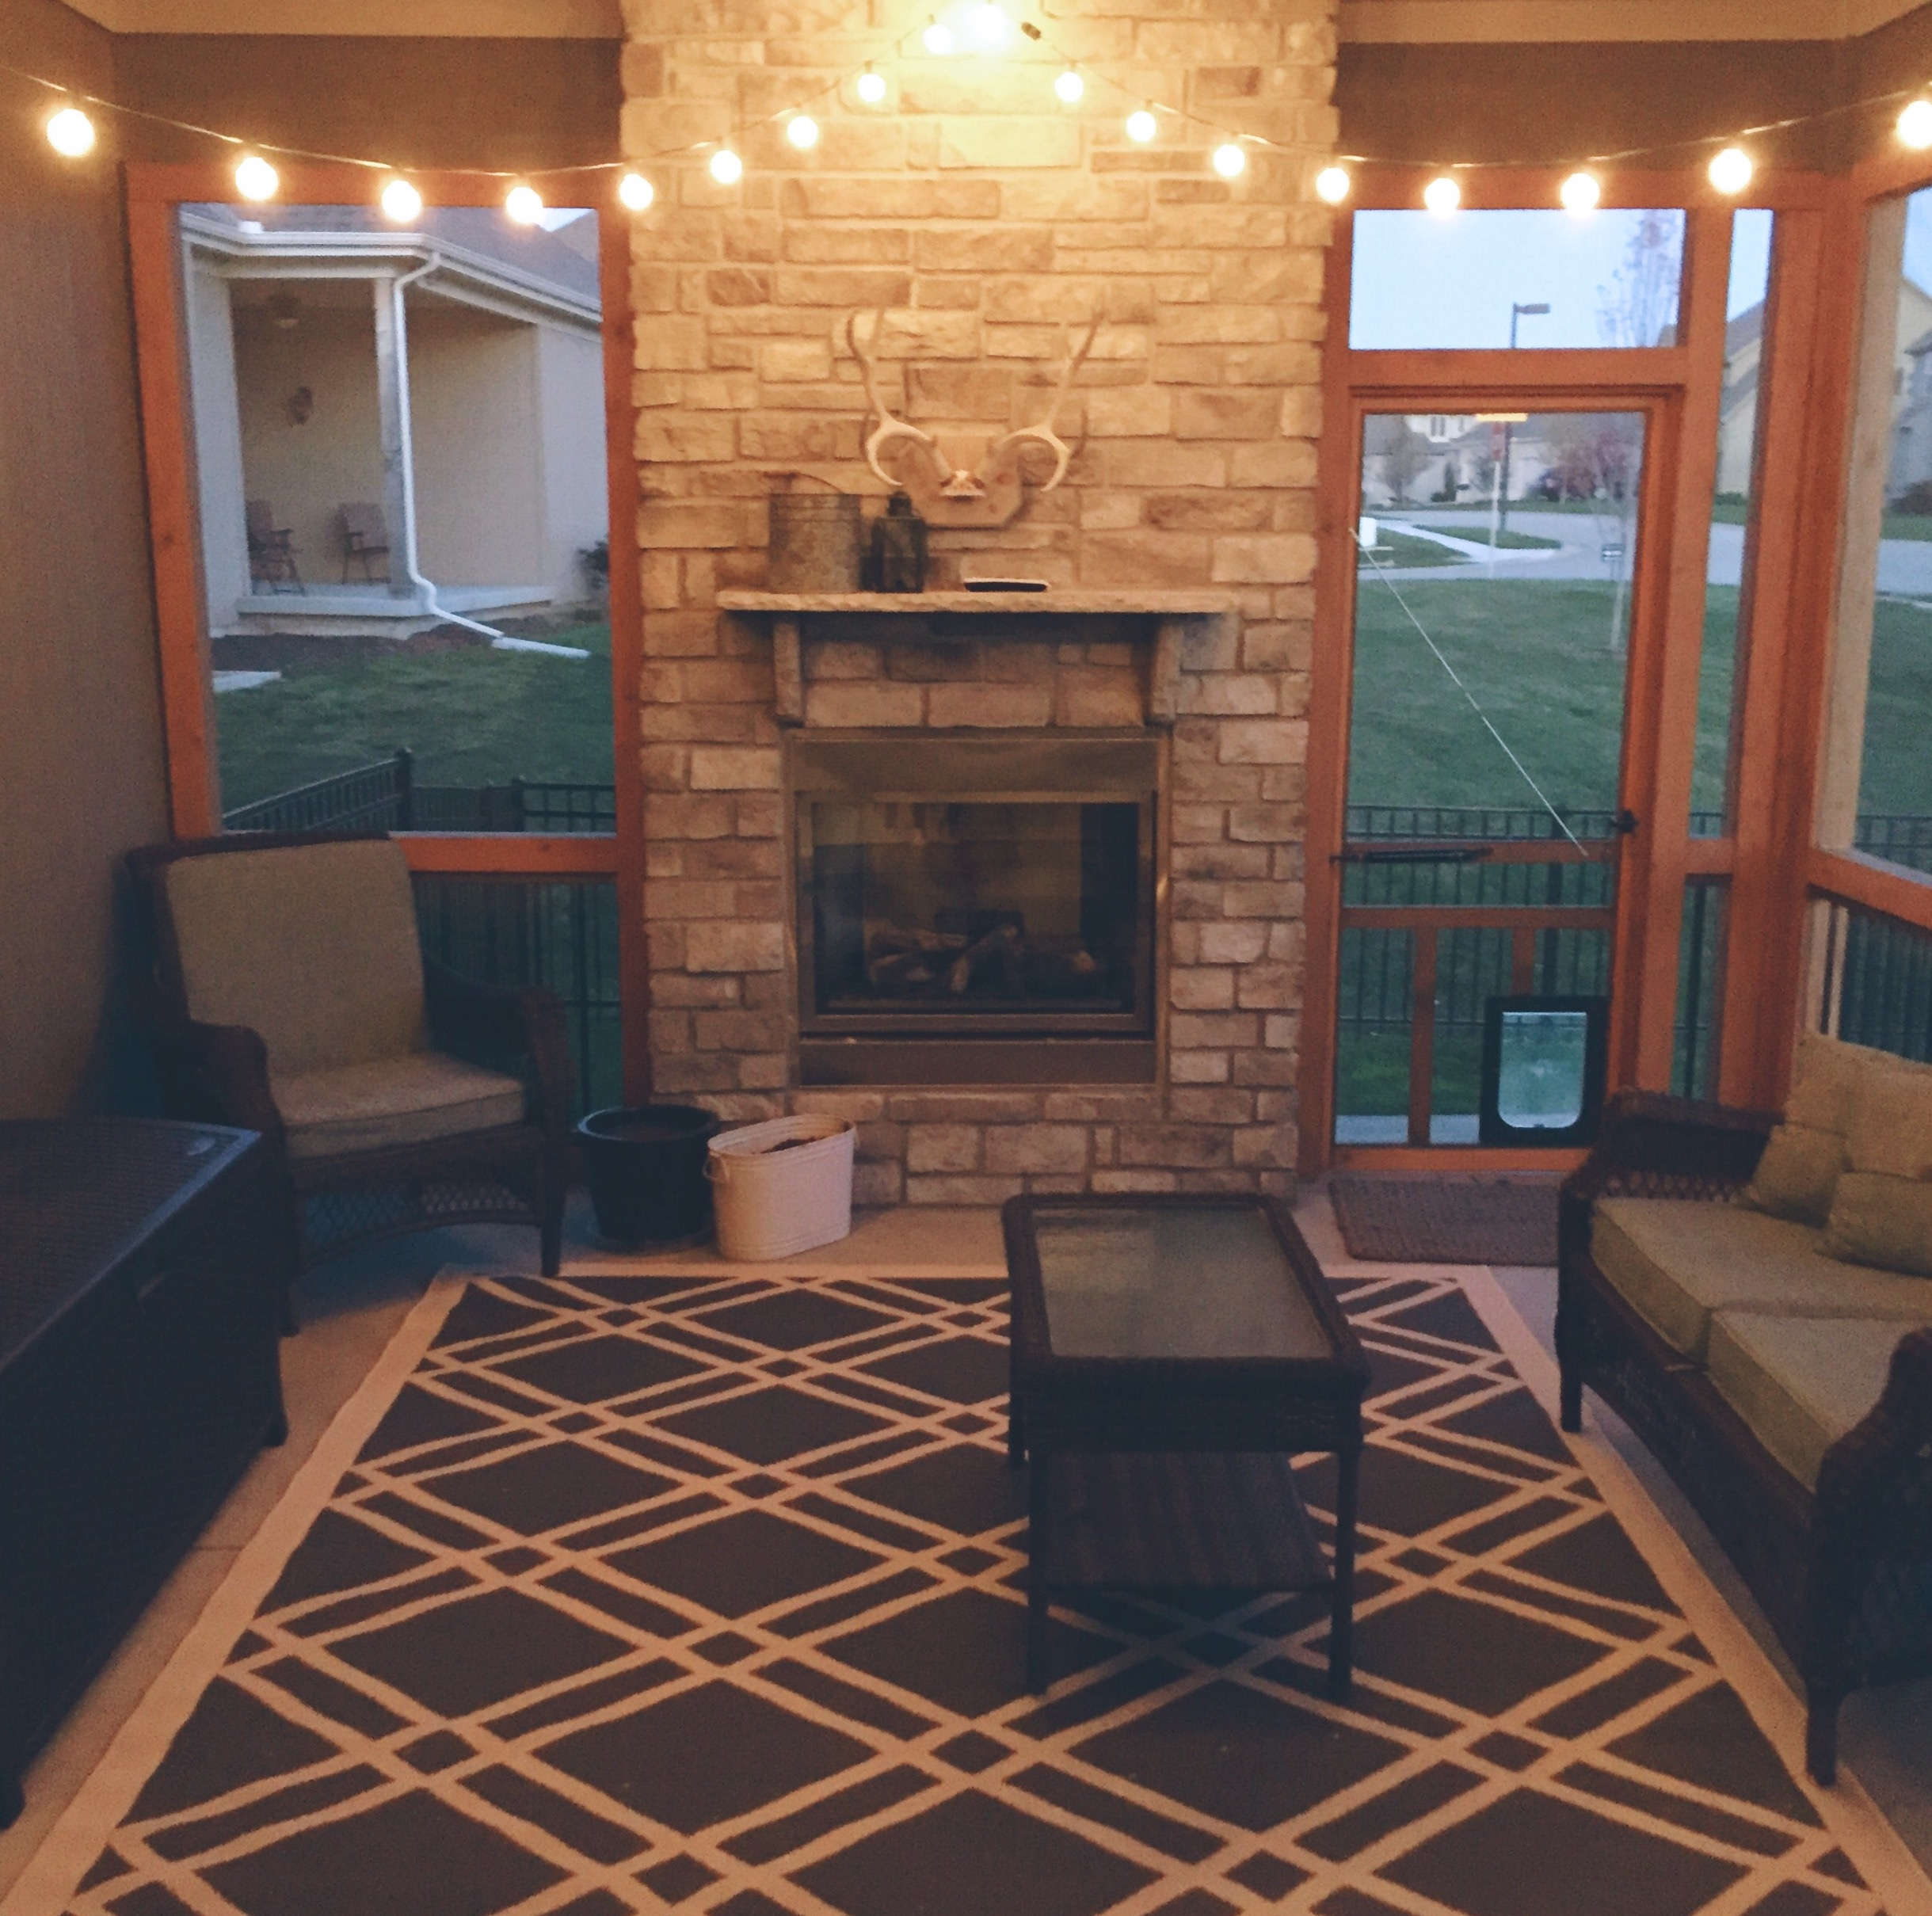 sunflower state of mind: screened porch with lights and fireplace